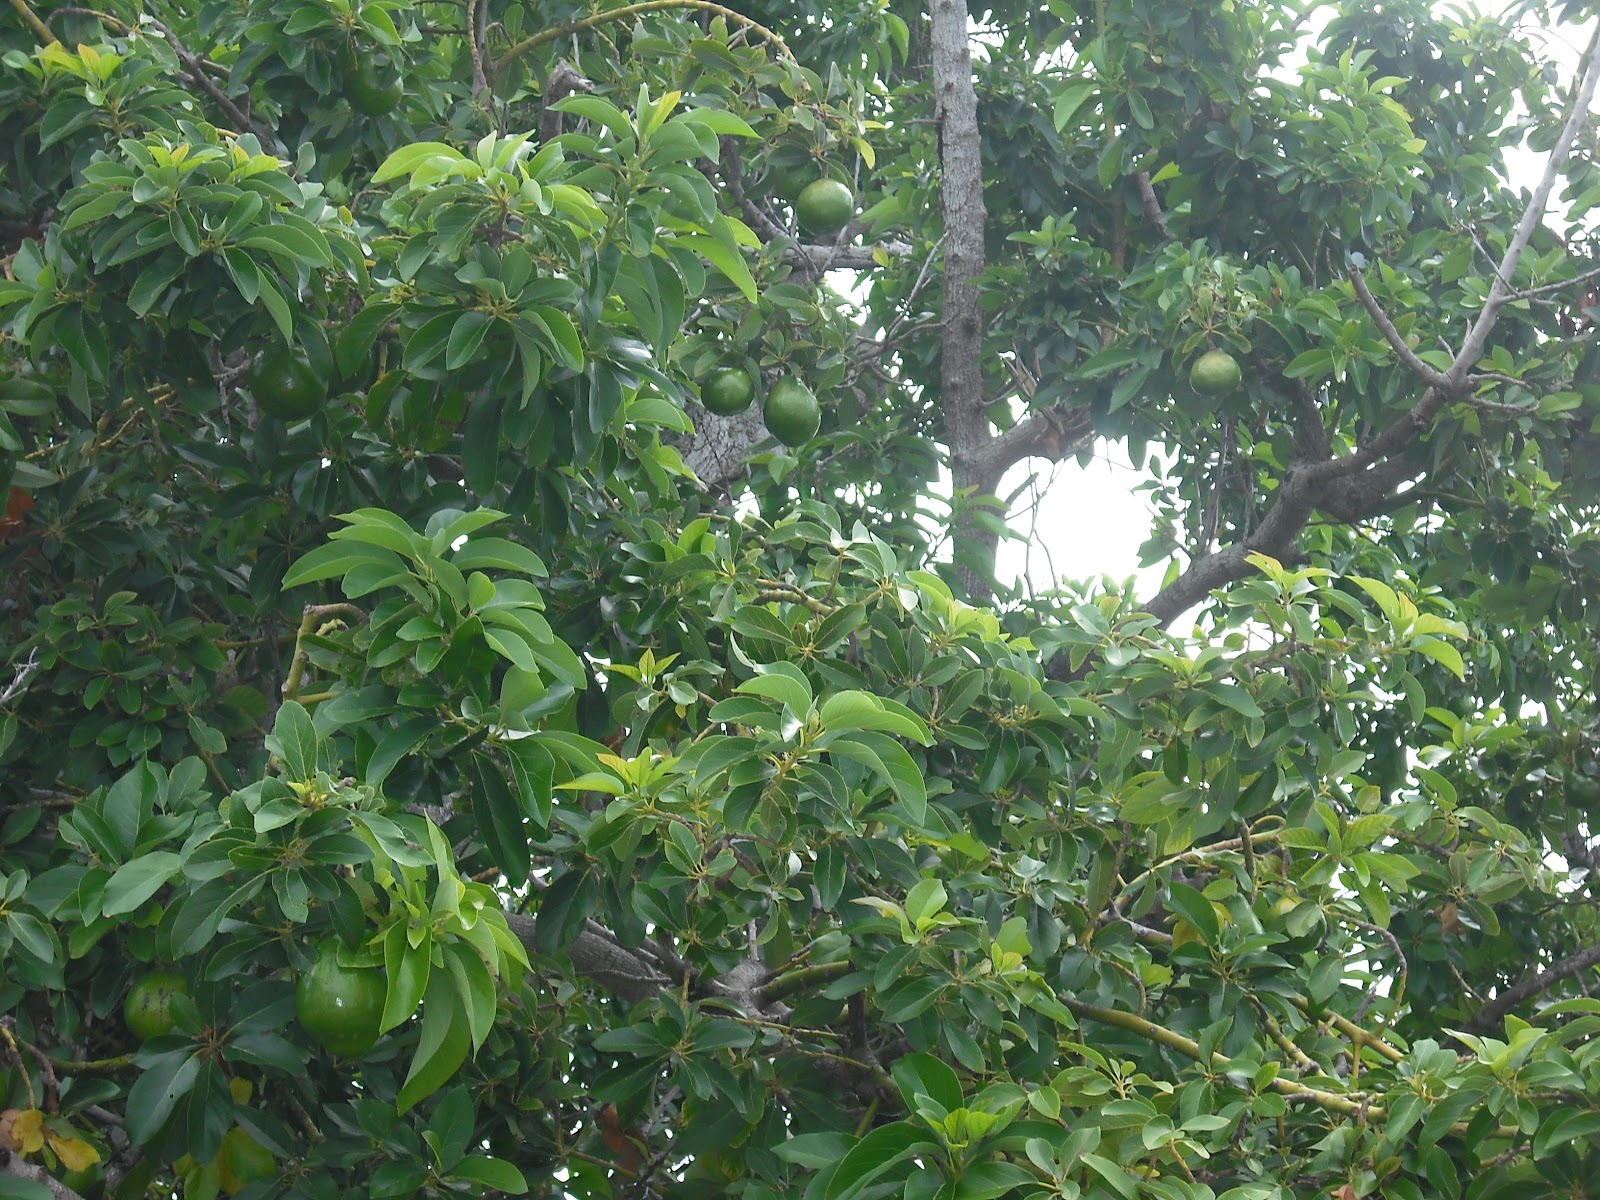 photos and images marketing avocado trees and avocados grown in bermuda. Black Bedroom Furniture Sets. Home Design Ideas